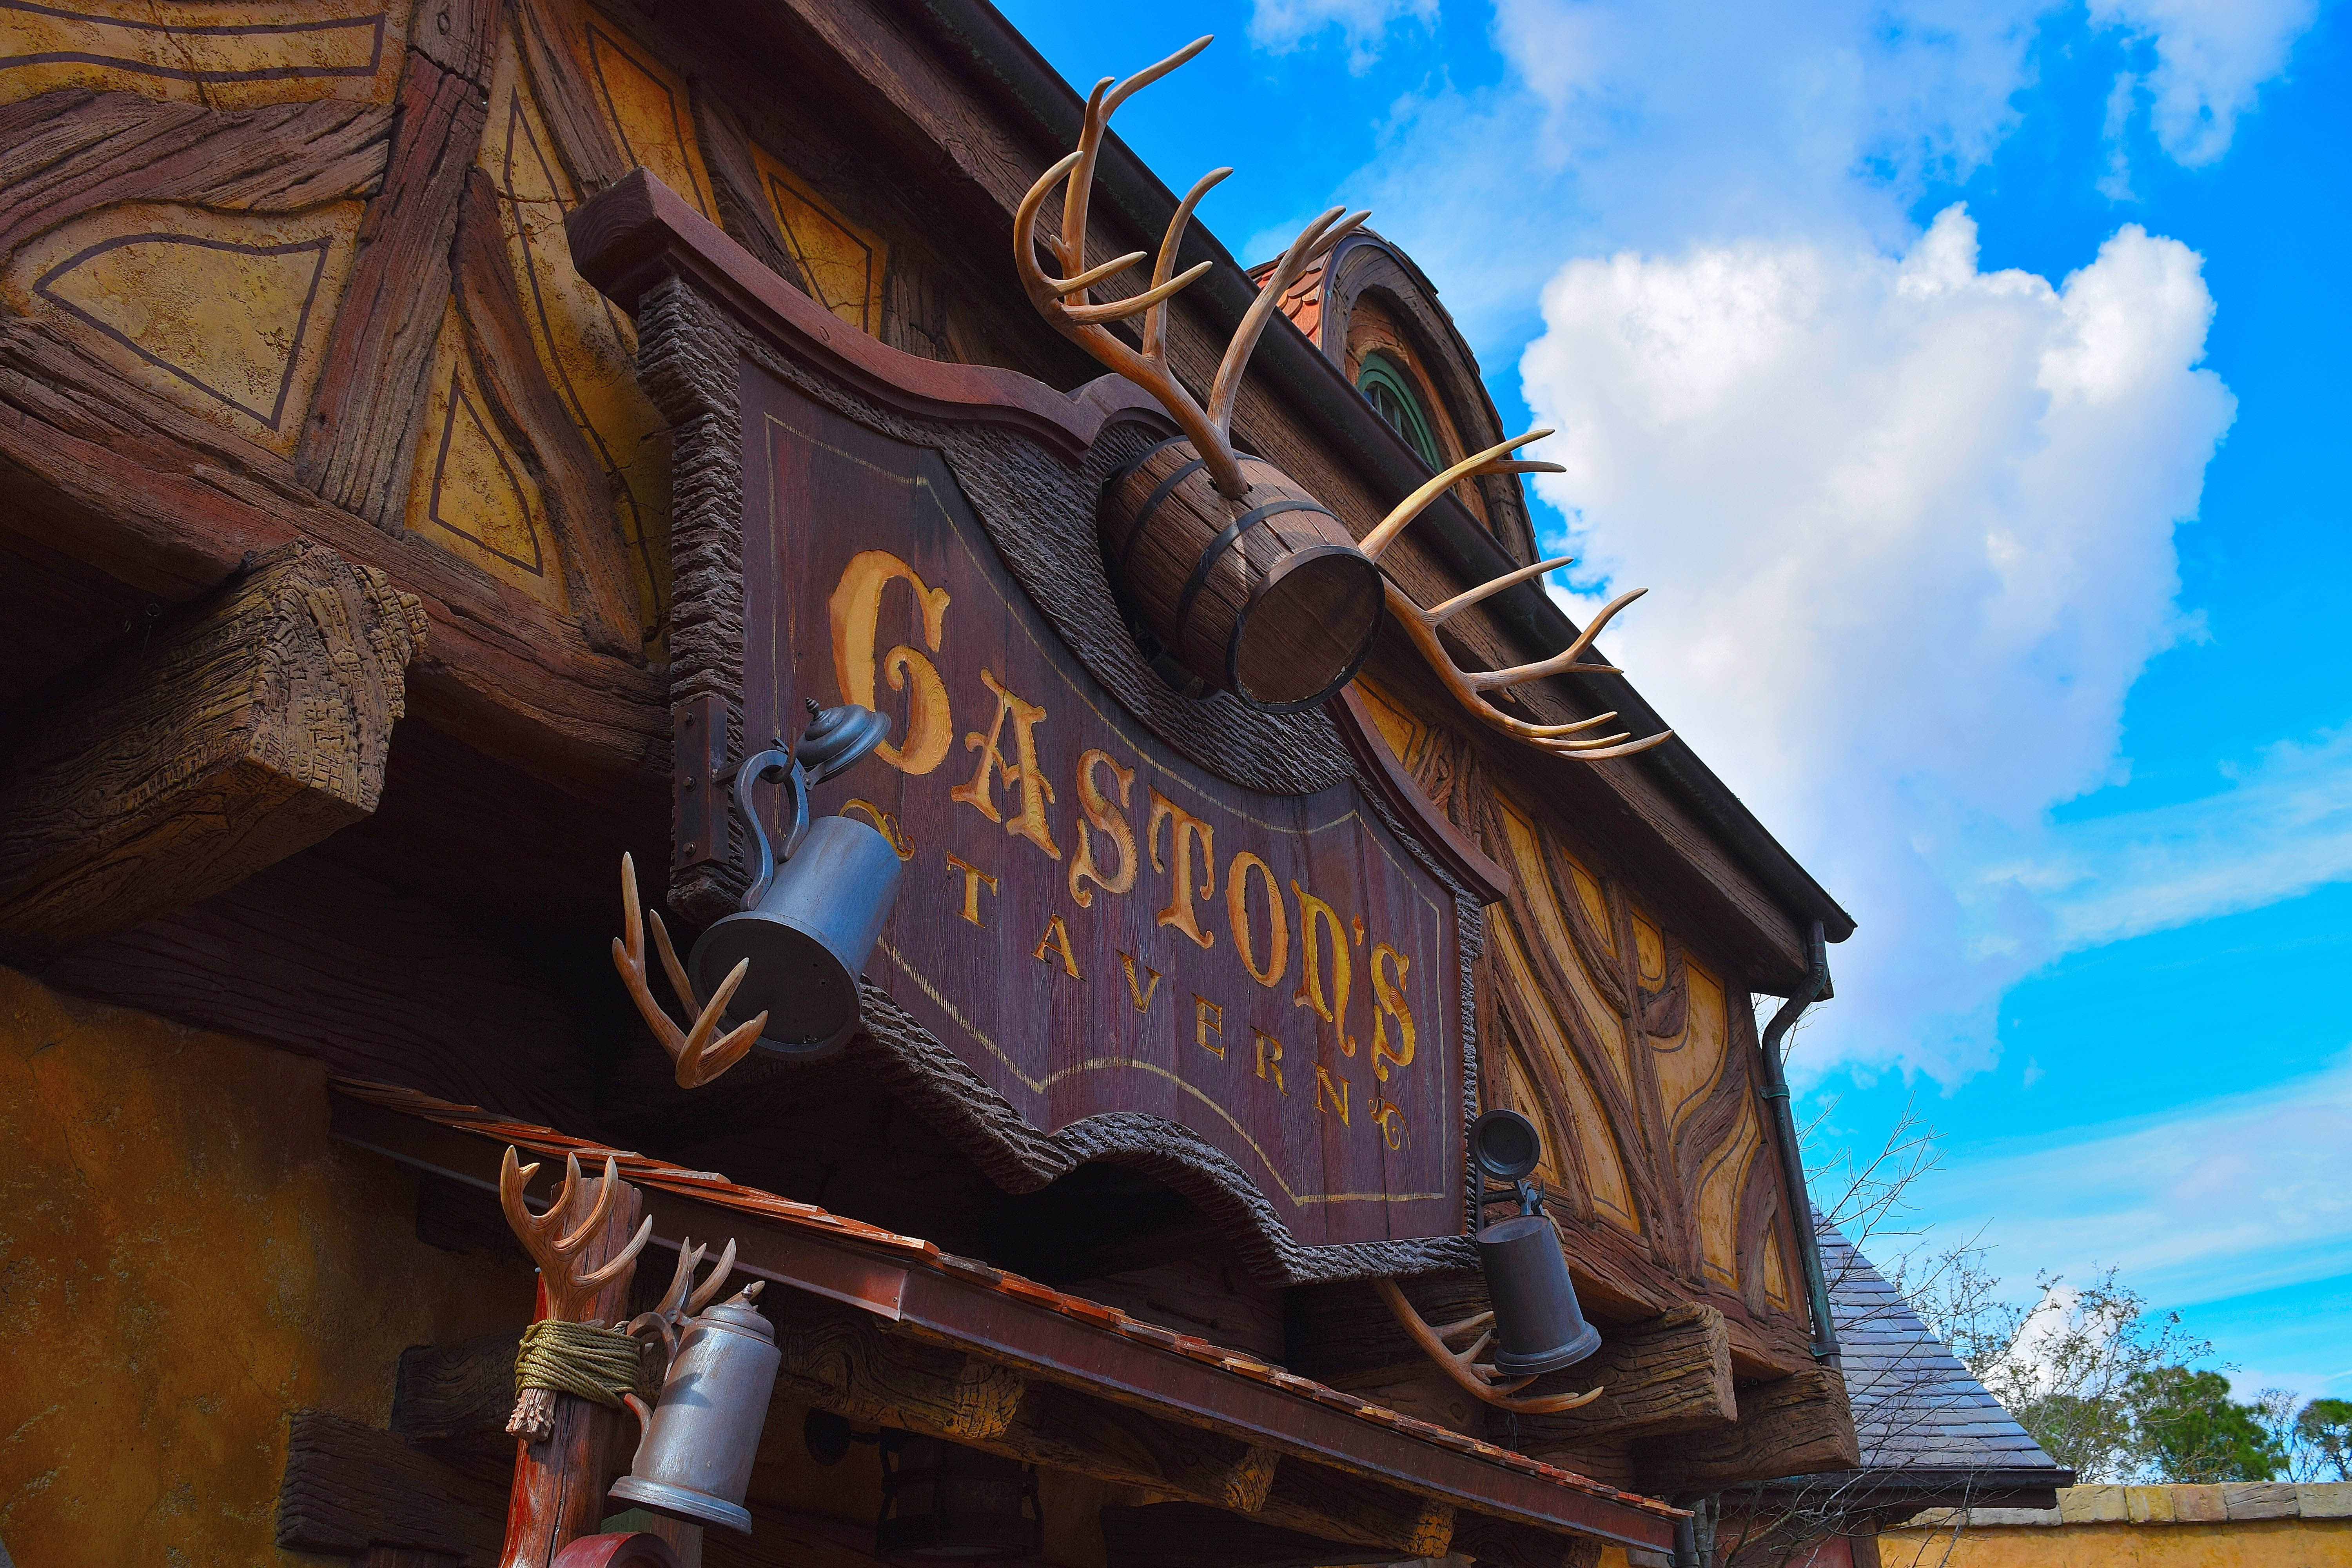 Quick-service breakfast options for a day at Magic Kingdom